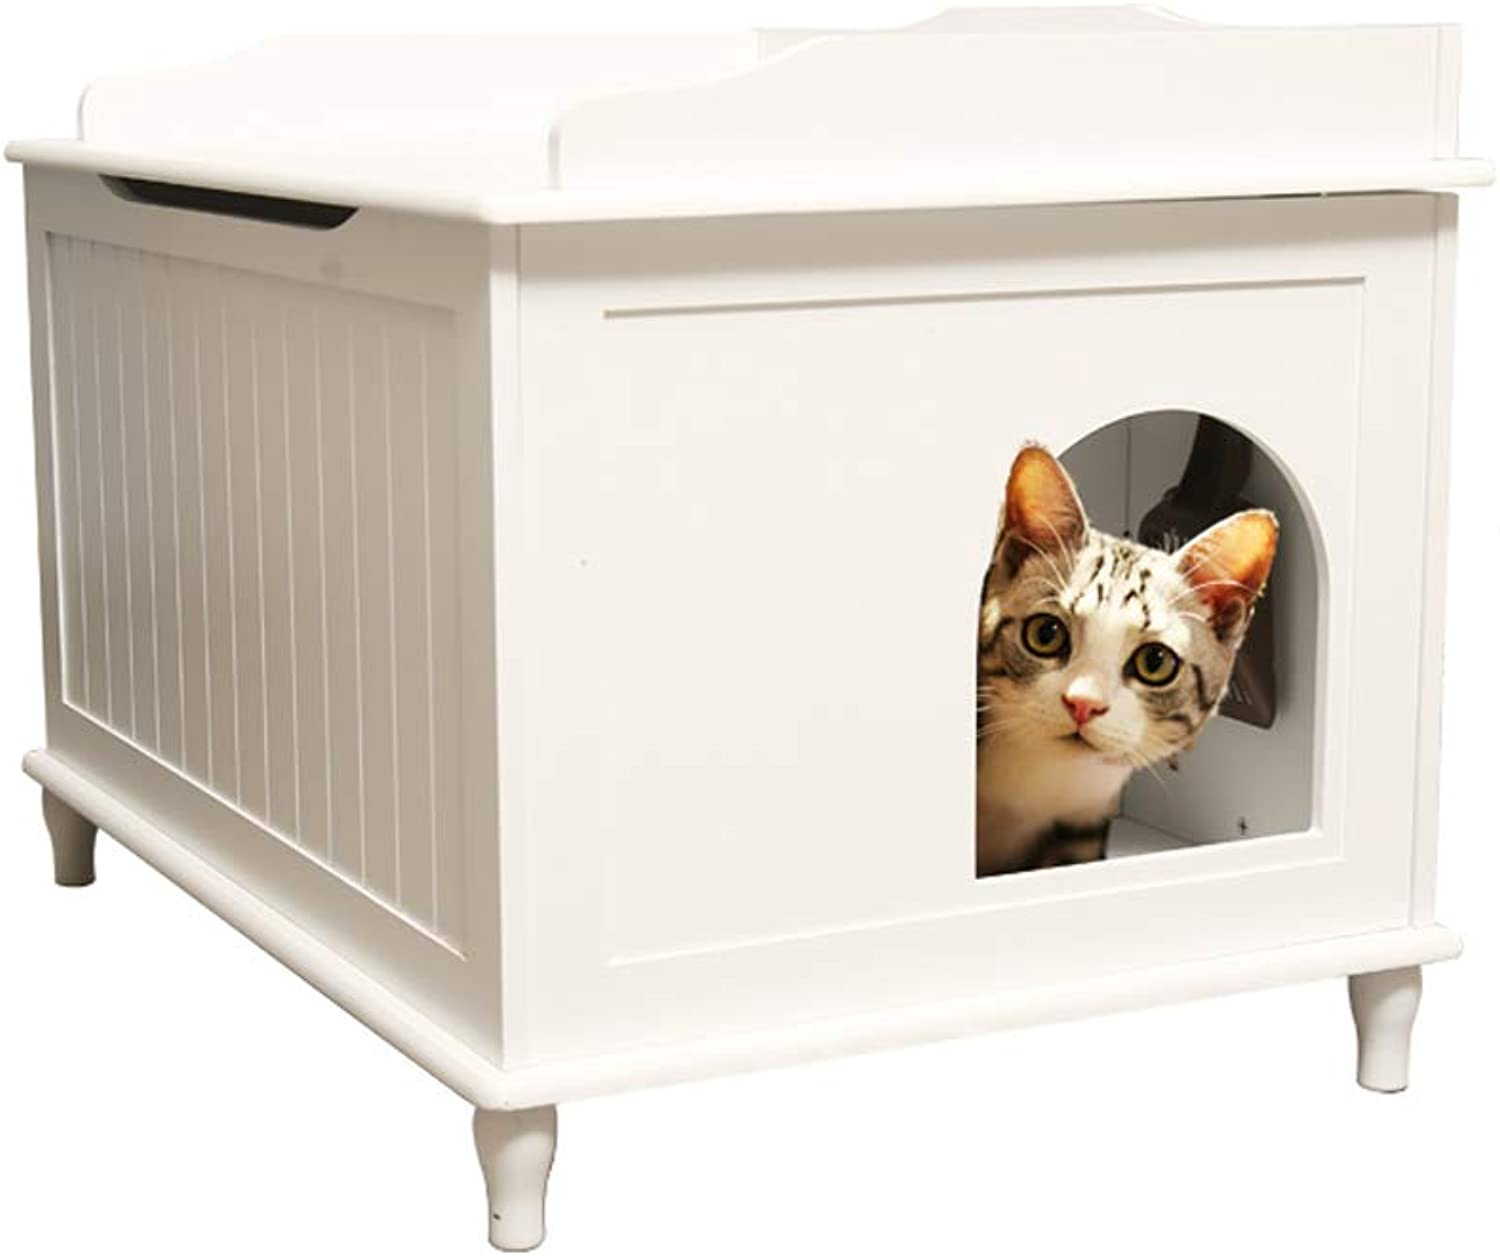 Nwn Wooden Pet Bed Fully Enclosed Deodorant Cat Litter Four Seasons Universal (color   White)